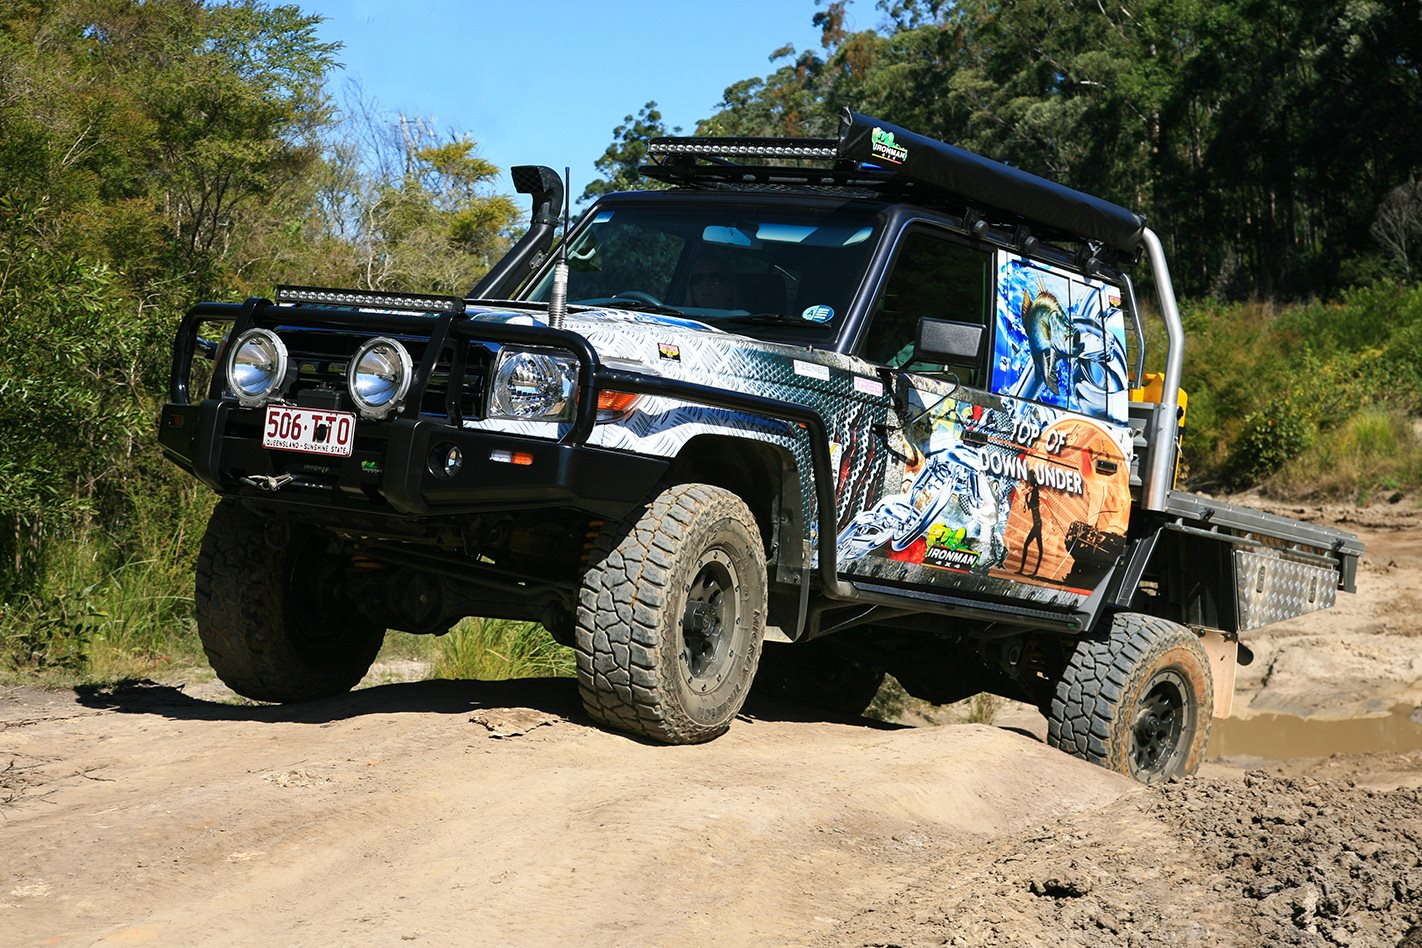 Jmacx Suspension Kit Review | 4x4 Australia